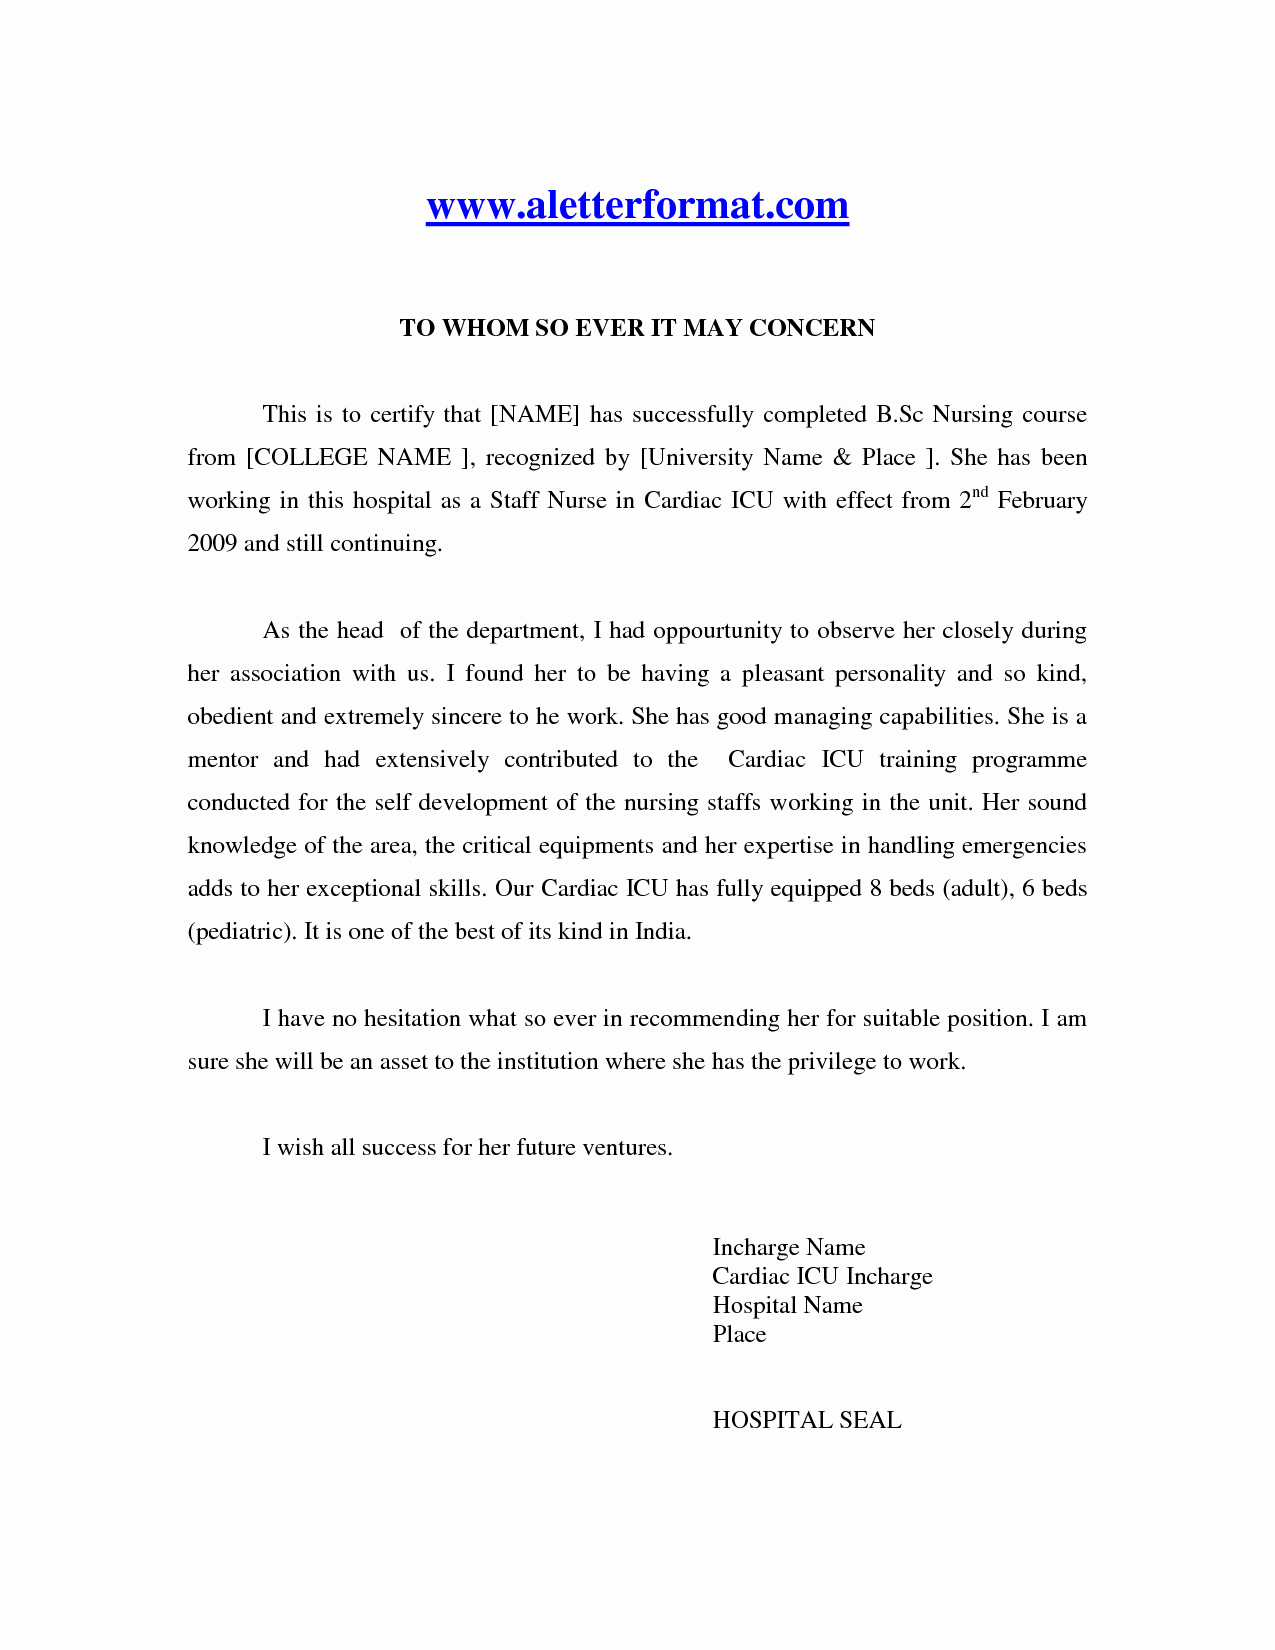 Nurse Practitioner Letter Of Recommendation Inspirational Sample Re Mendation Letter for Nursing Hashtag Bg